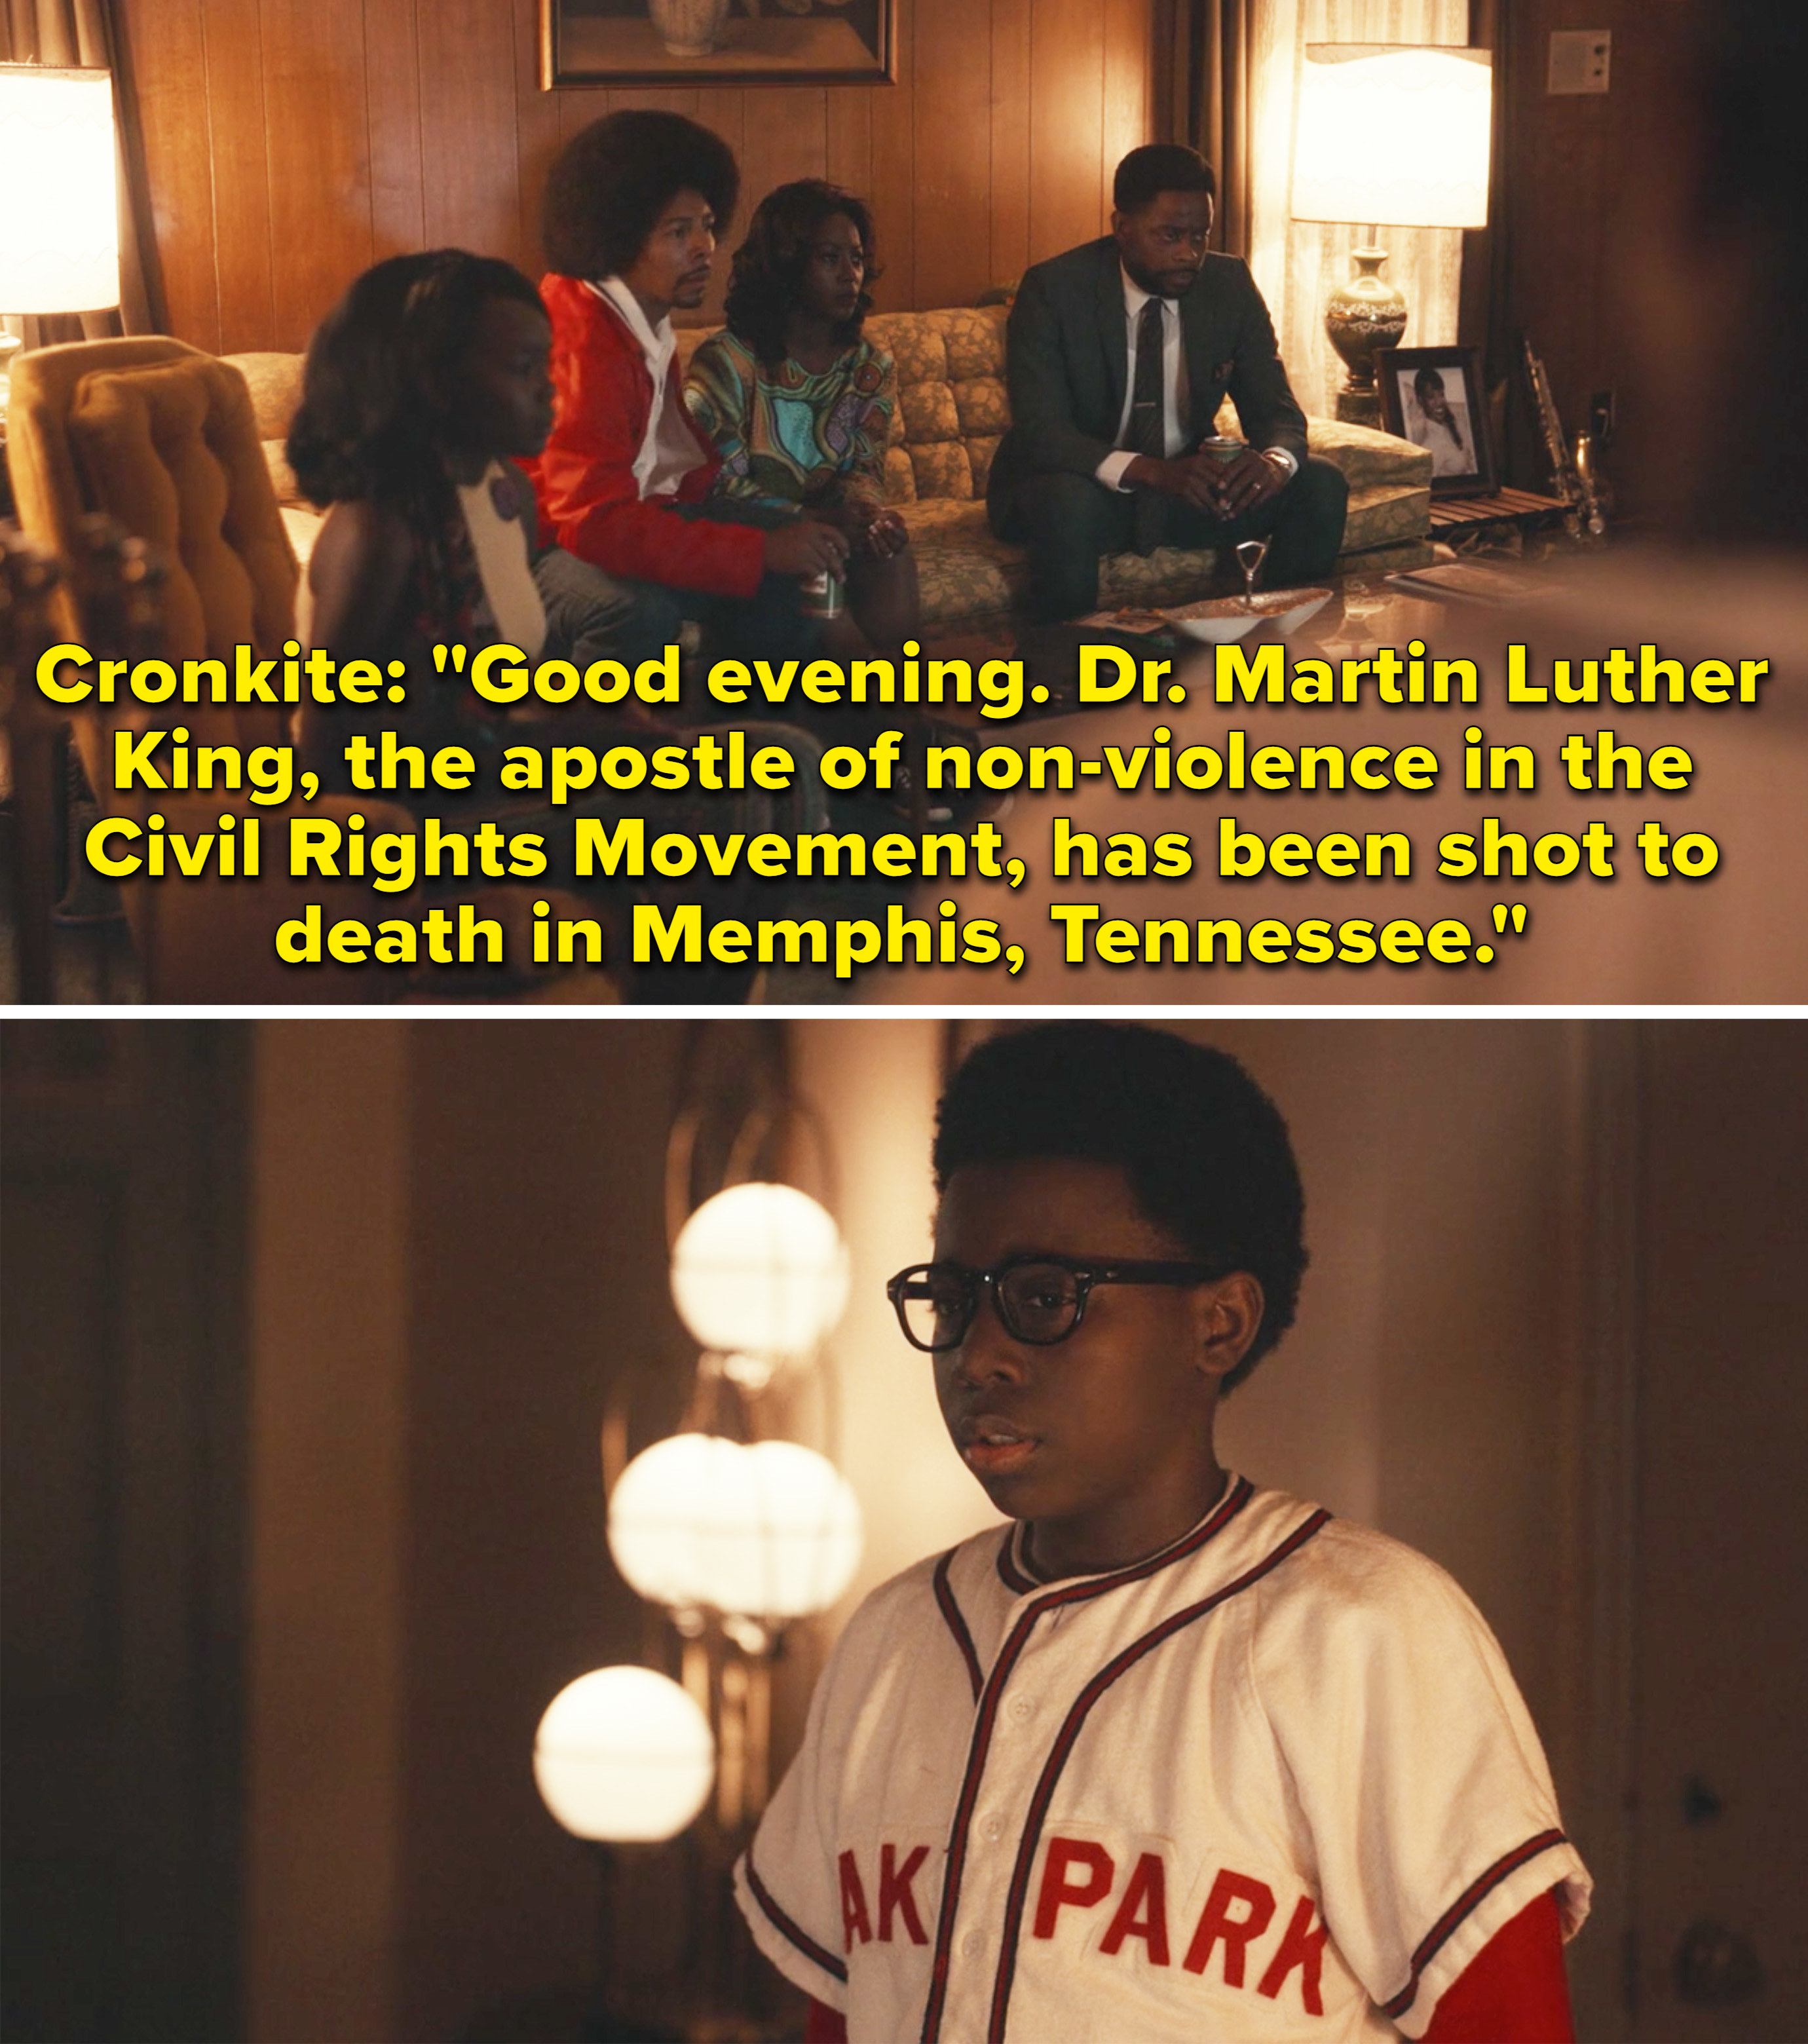 The Williams family learning about Martin Luther King's death on the news